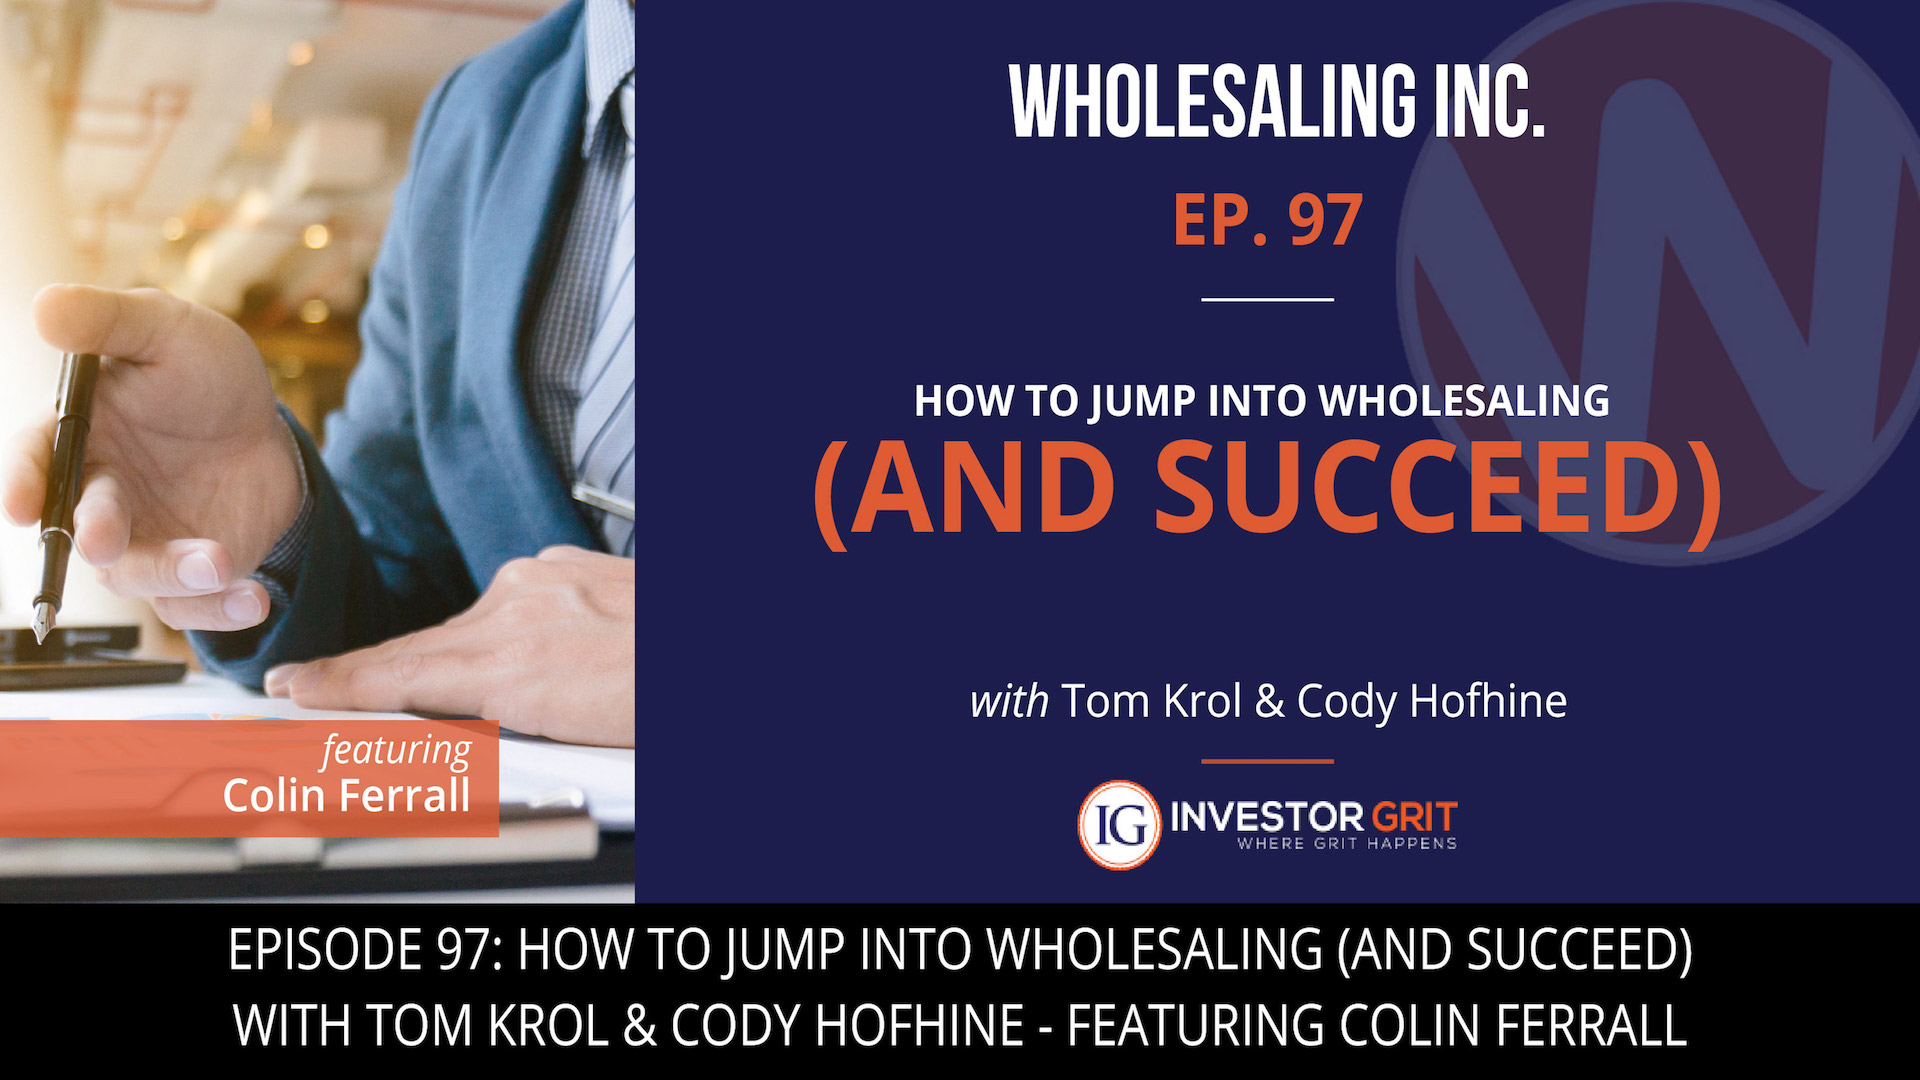 Episode 97: How to Jump into Wholesaling (and Succeed) |